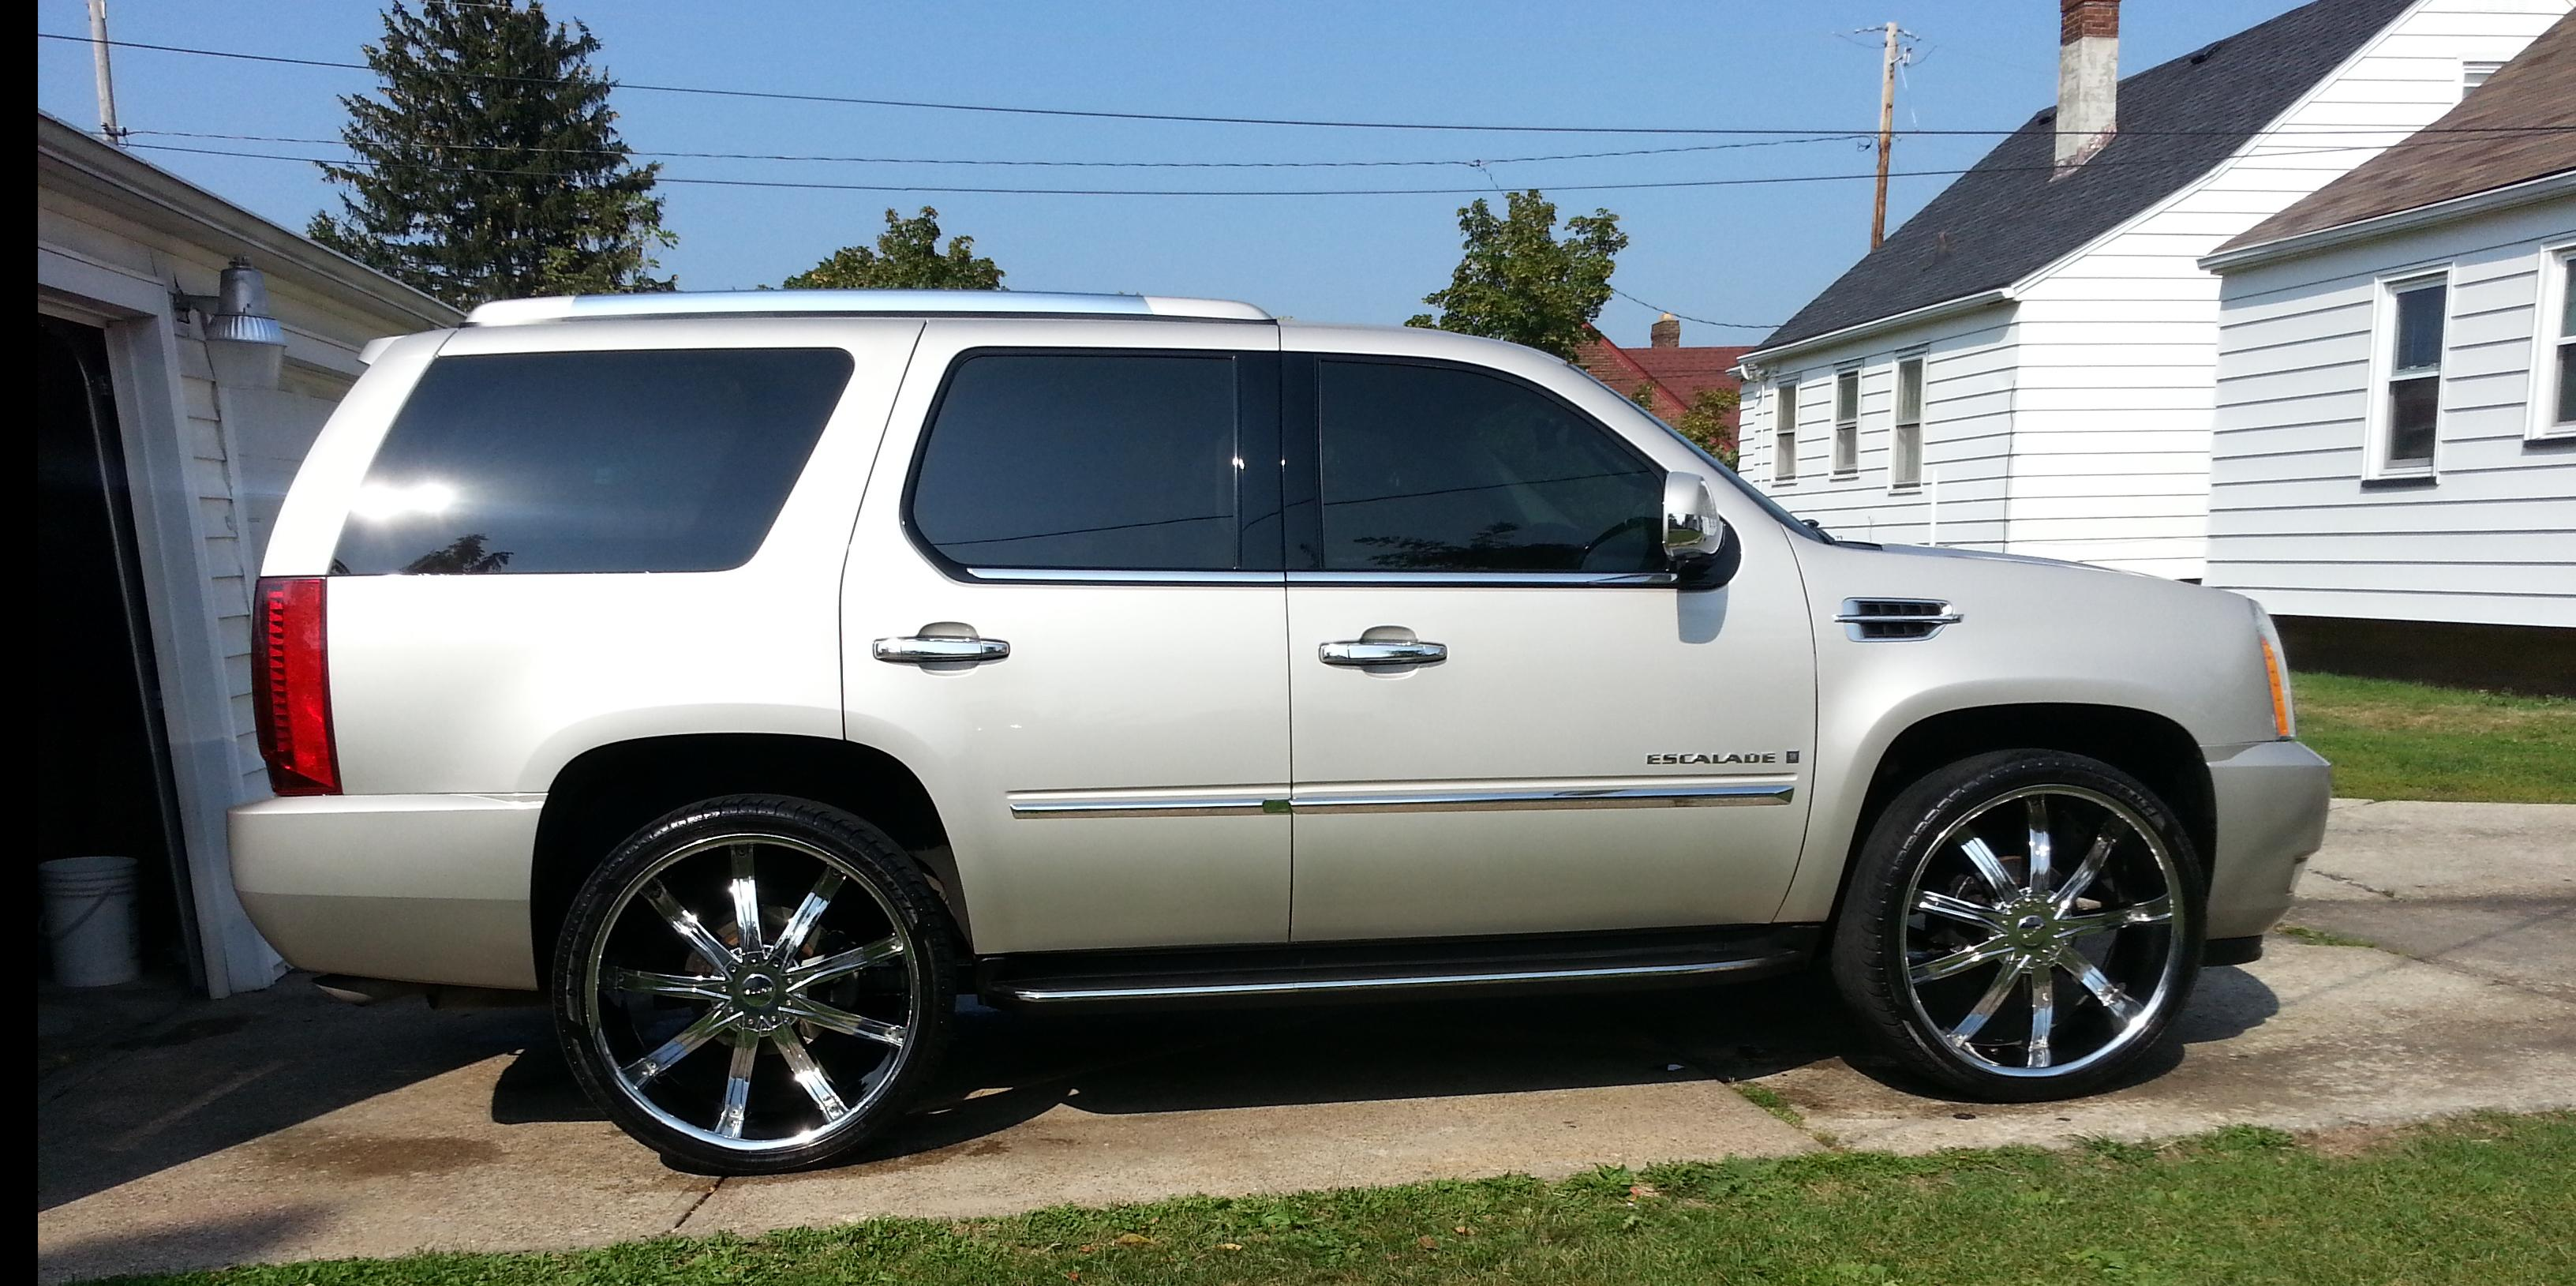 DJFITTED 2007 Cadillac Escalade